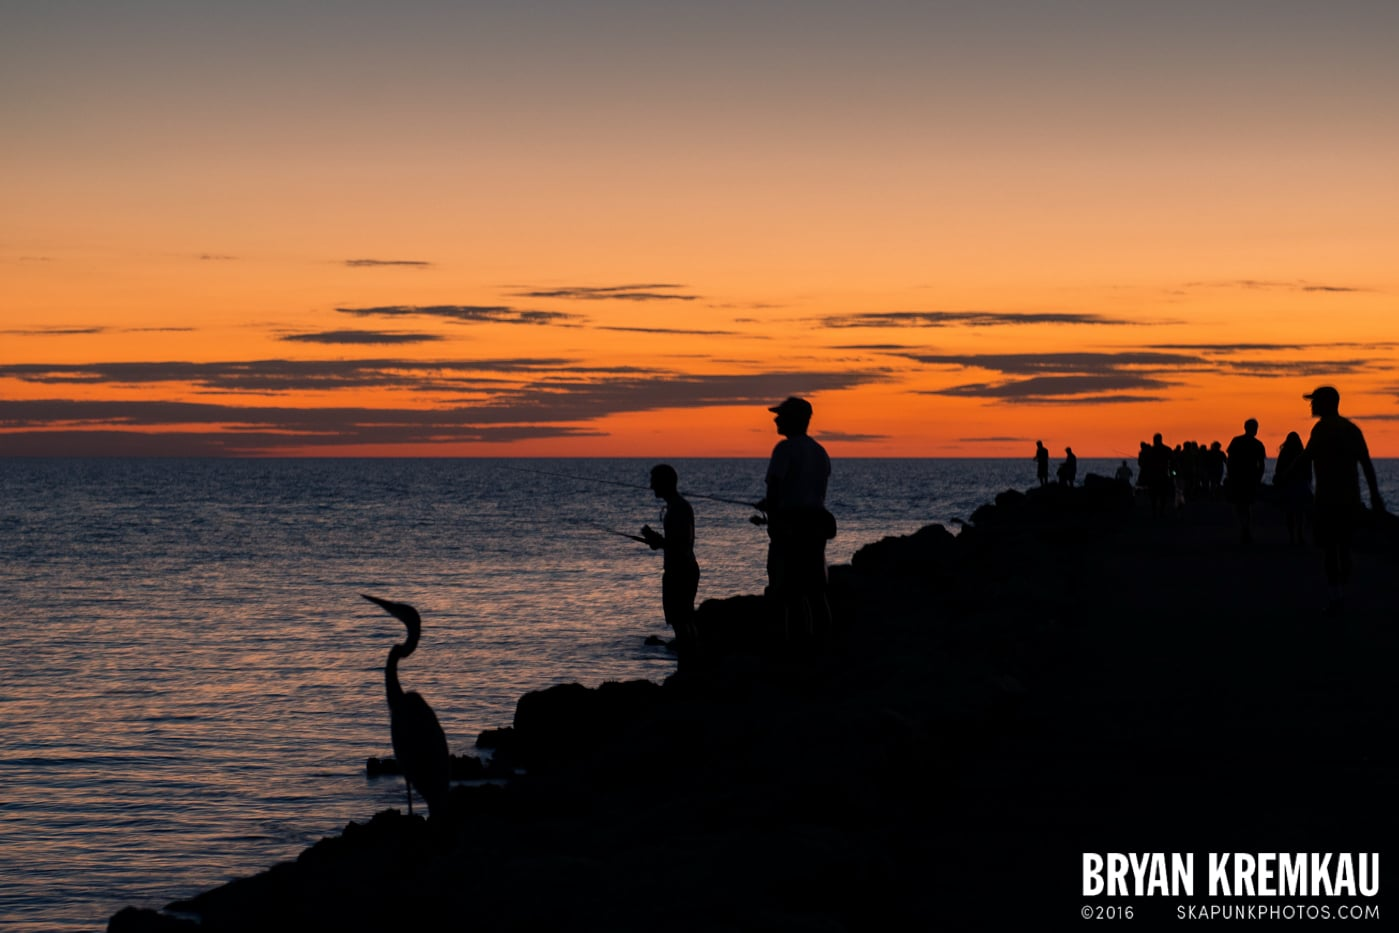 Sunsets, Astrophotography & Birds @ Venice, Florida - 10.25.14 - 11.5.14 (123)